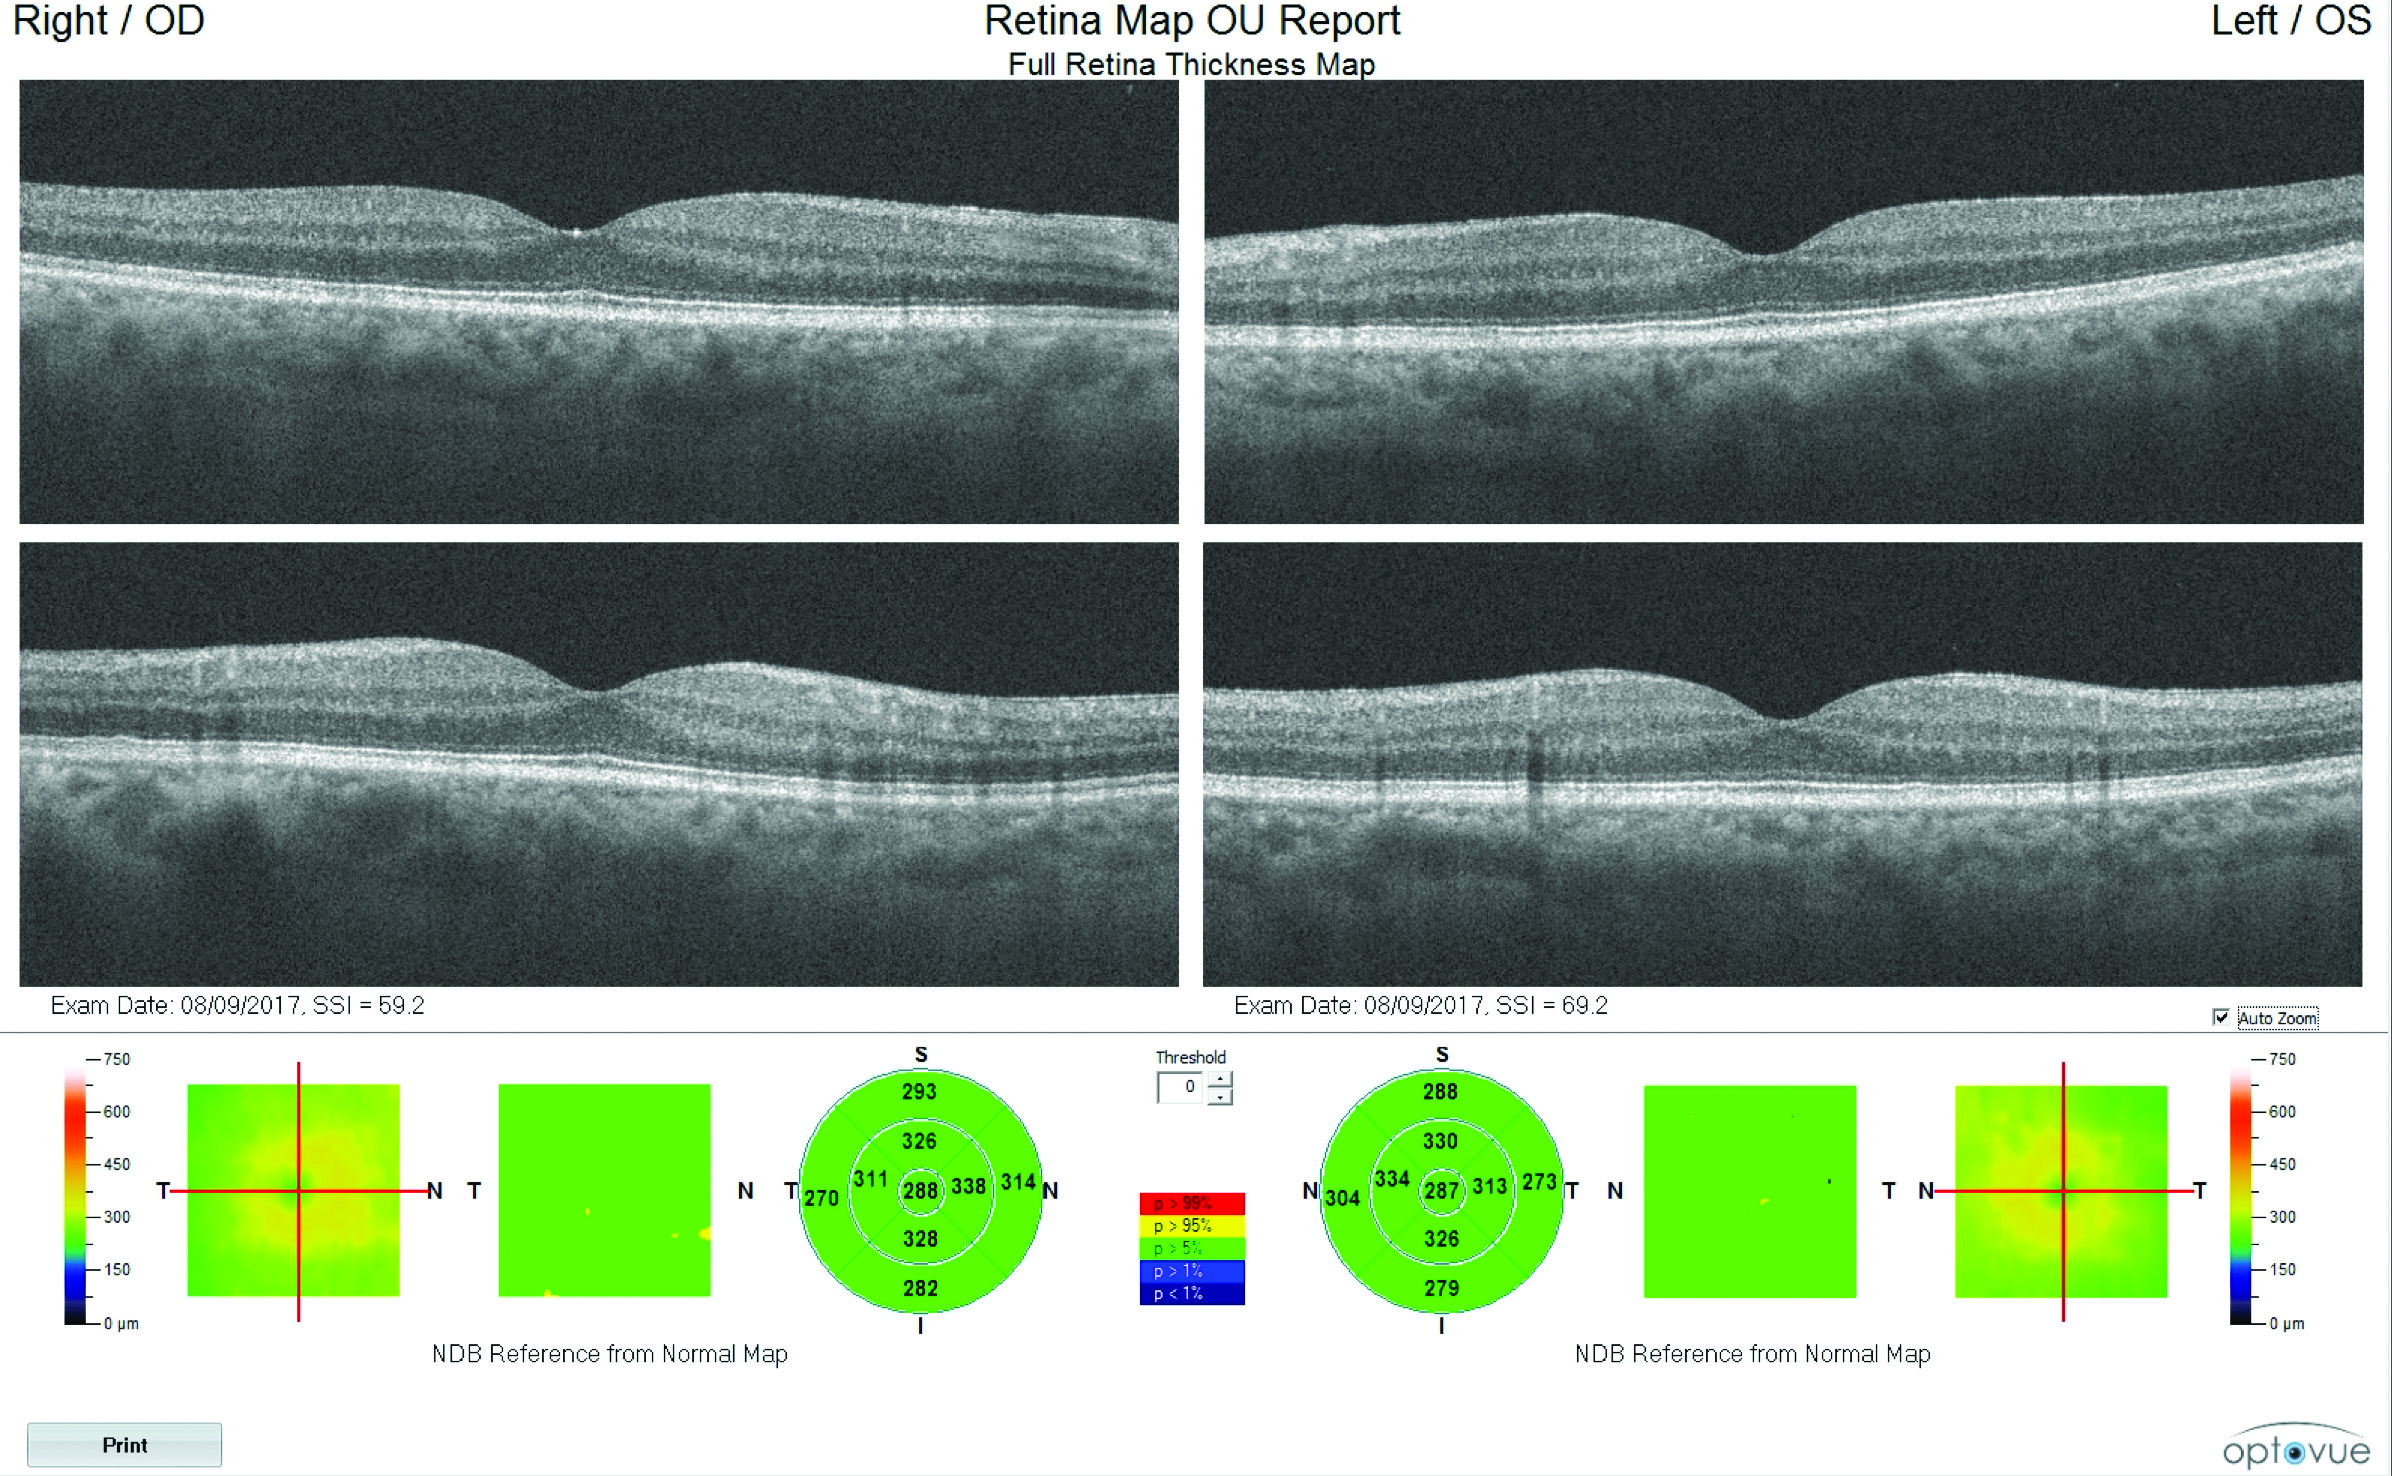 Retina map macular OCT of both eyes showing normal macular thickness with no macular edema or thinning.